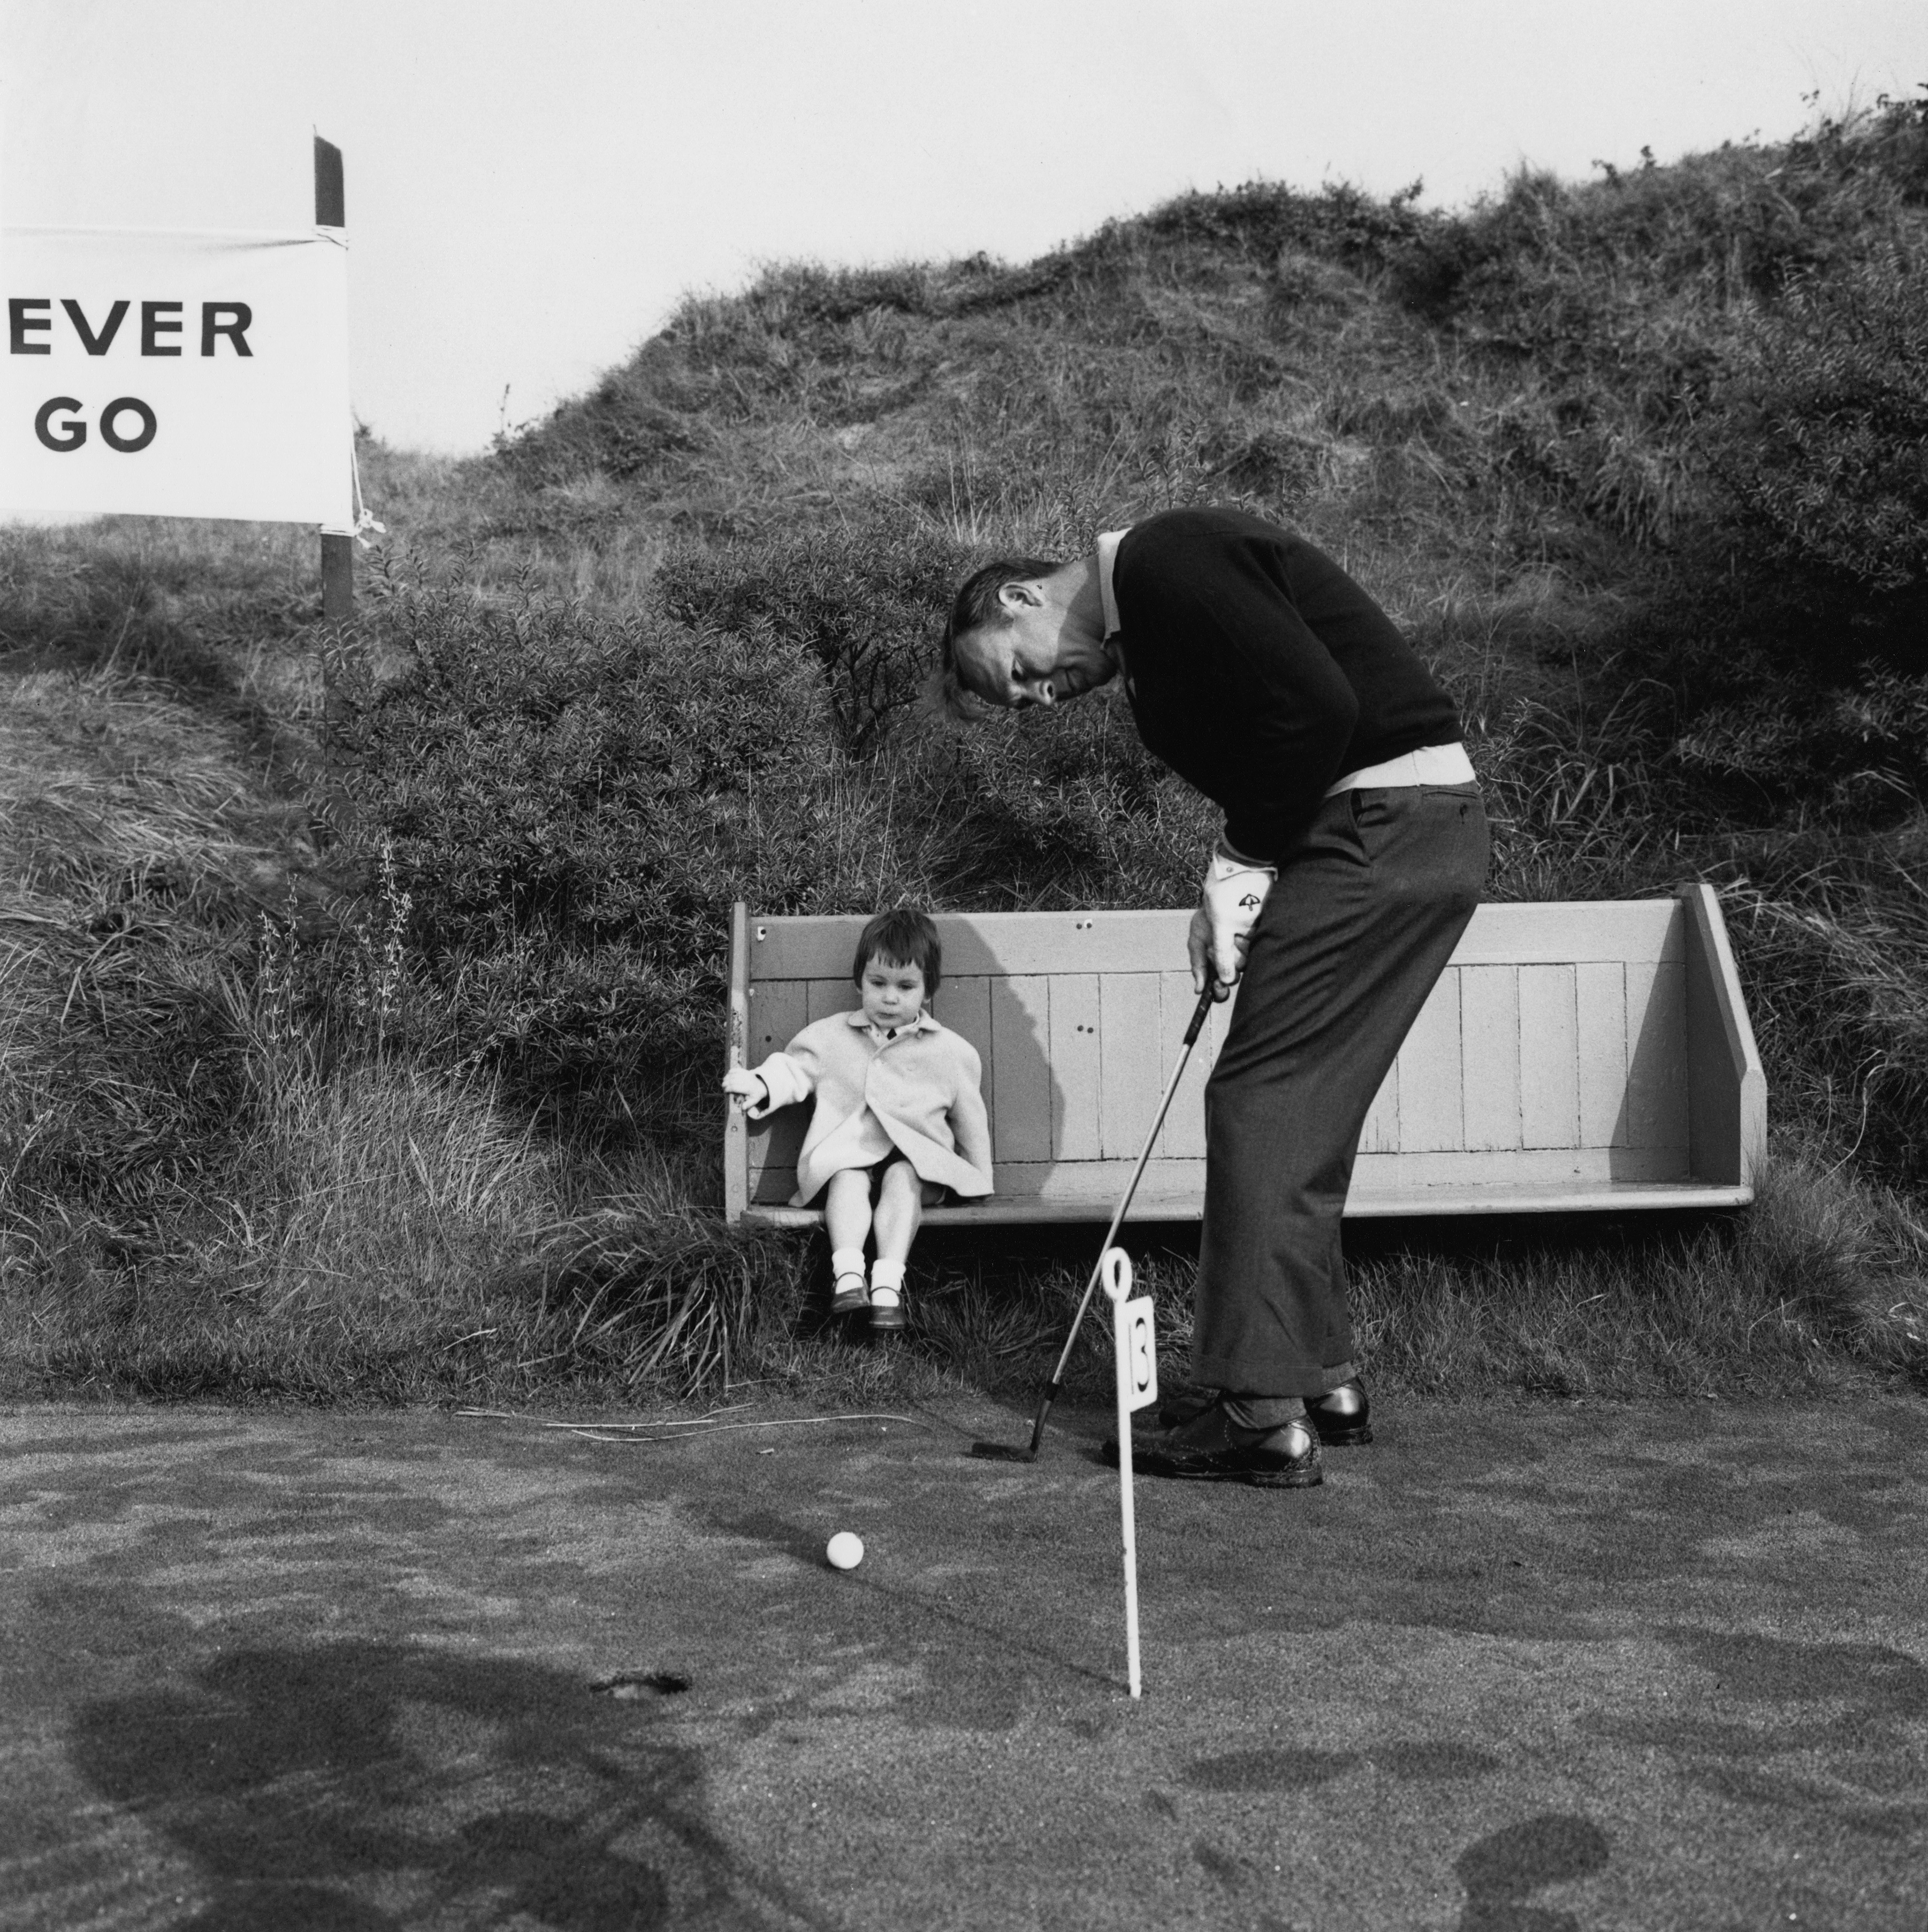 Arnold Palmer shows young Jane Coop how to putt at Royal Birkdale, Southport, where he was practicing for his Ryder Cup match on October 7, 1965.